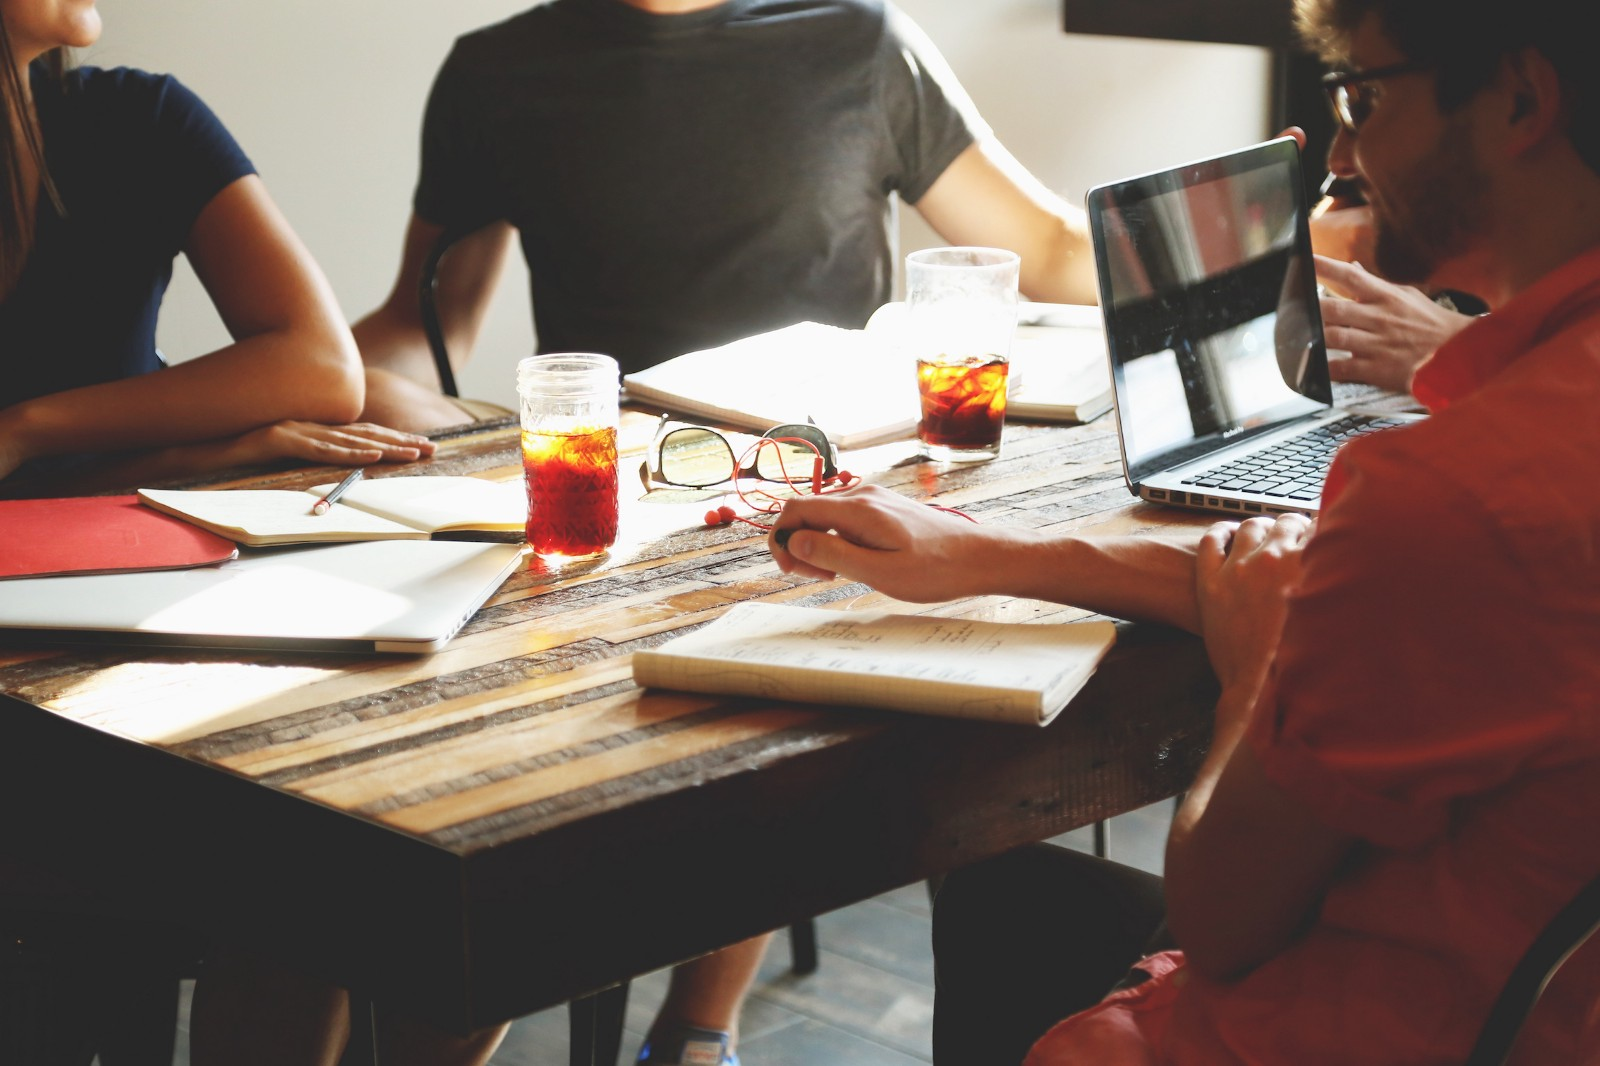 Stay Engaged for an Effective Meeting